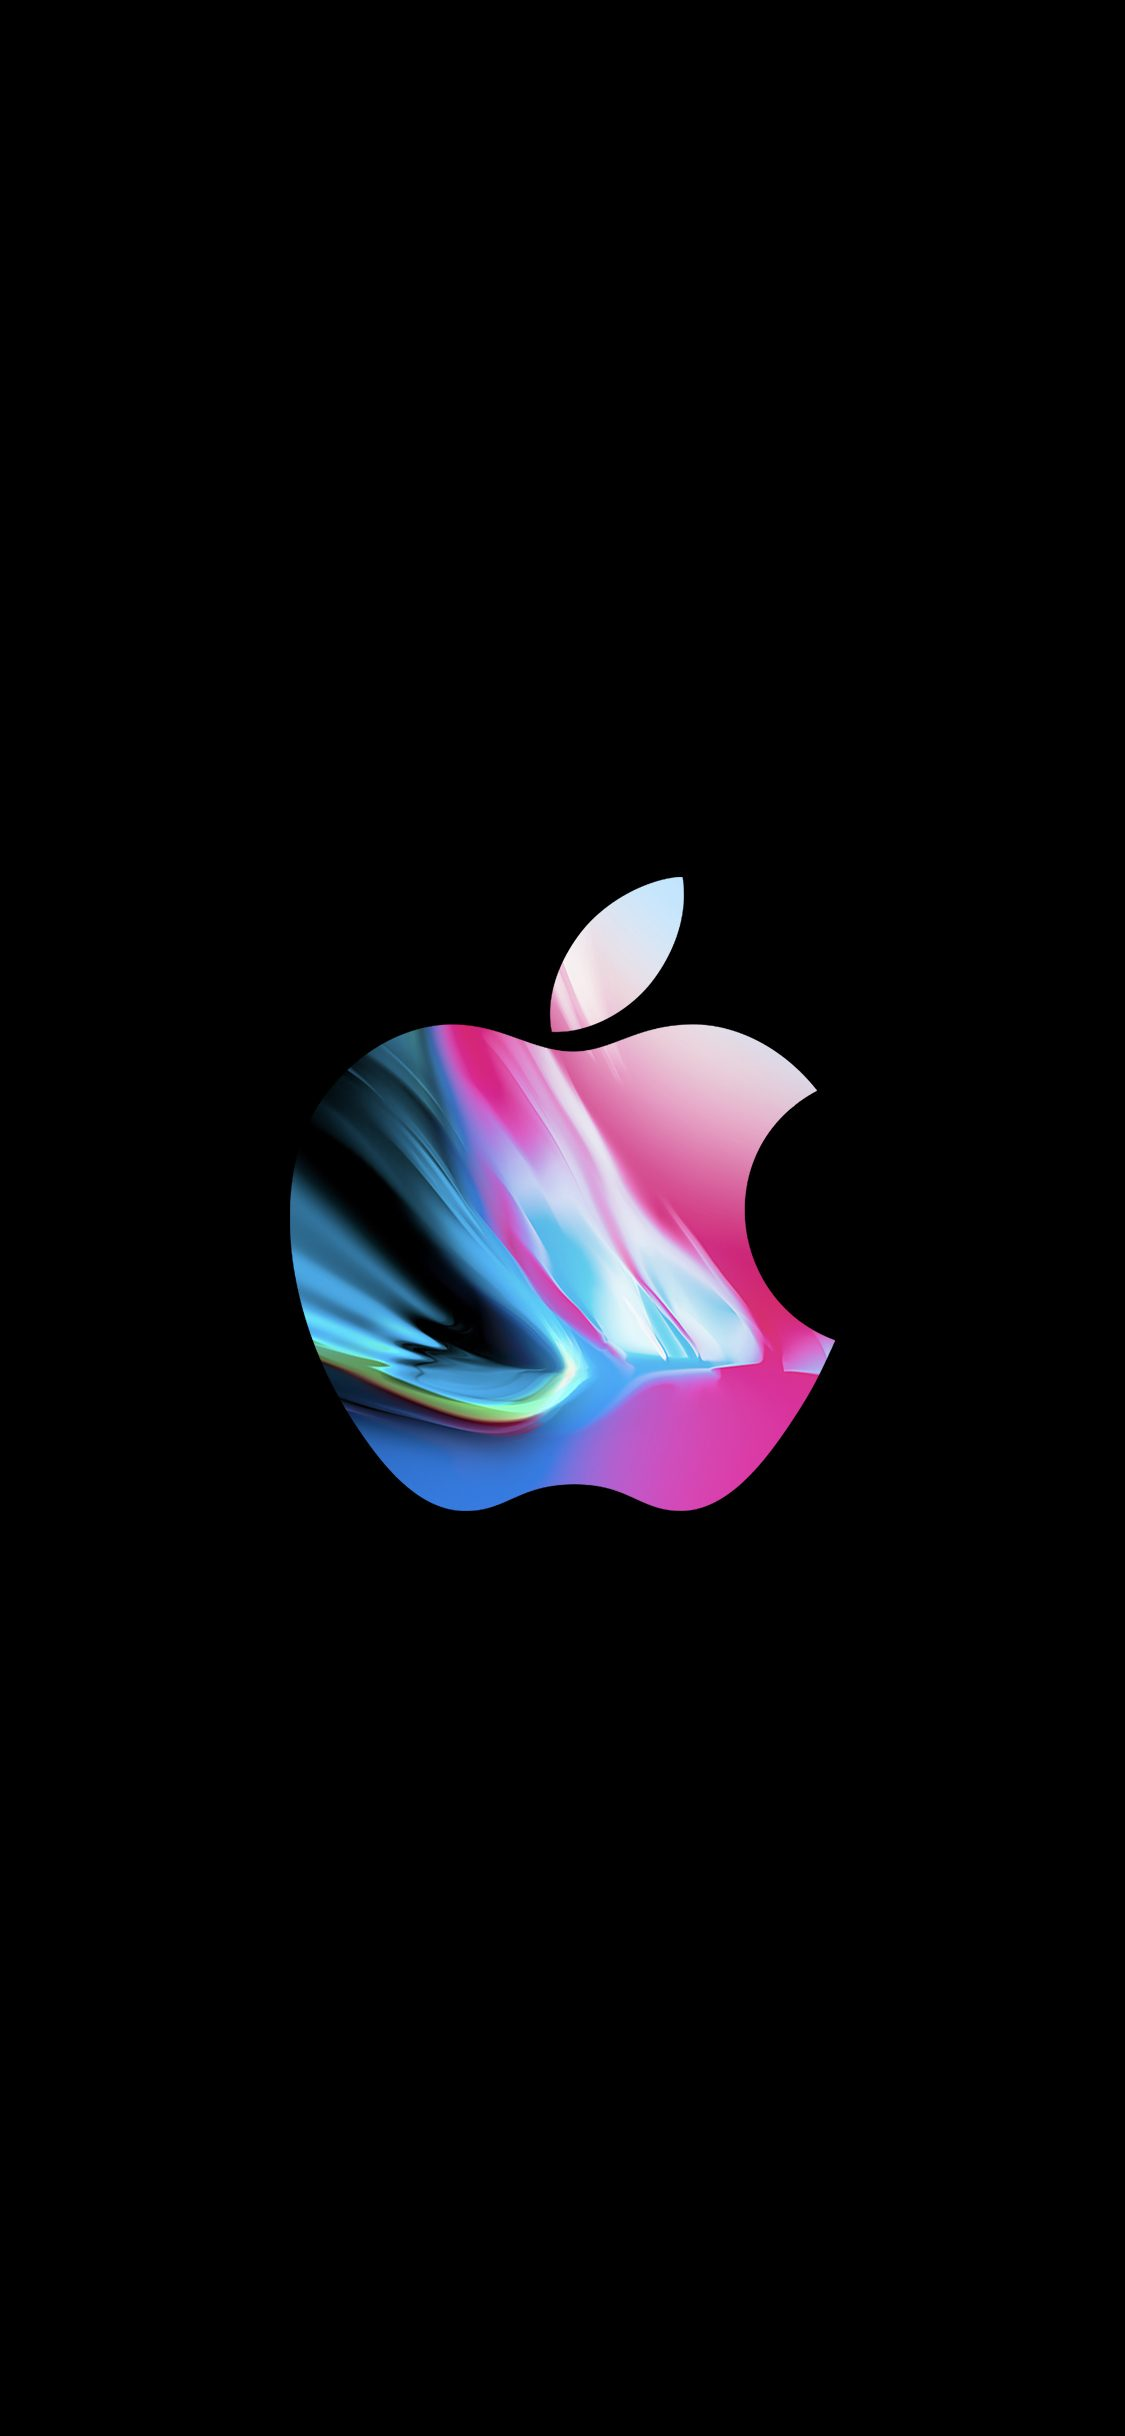 Iphone X Logo Wallpapers Top Free Iphone X Logo